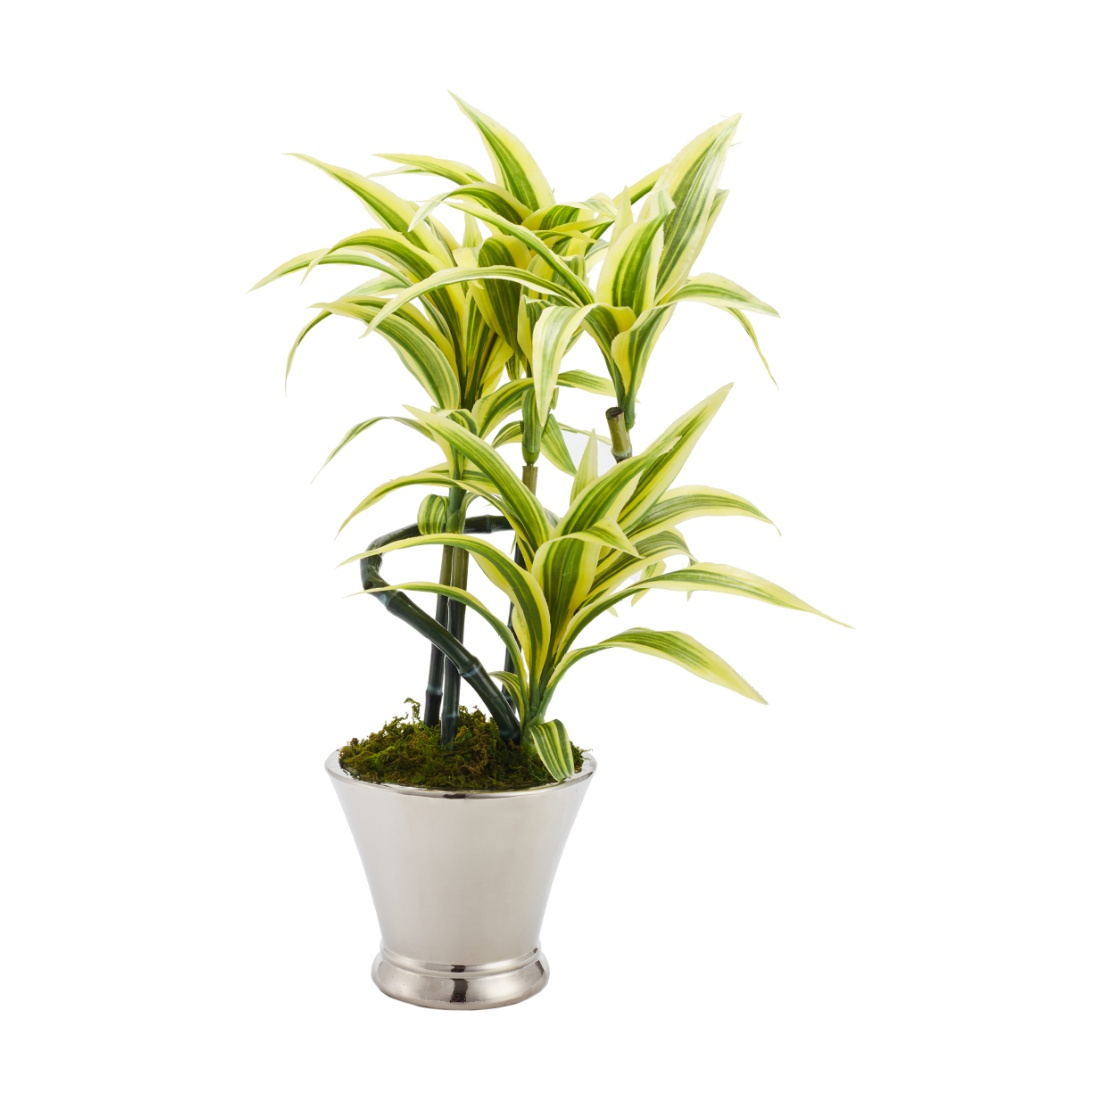 Sage Dracena Large Wax Artificial Plants in Multicolor Colour by Living Essence